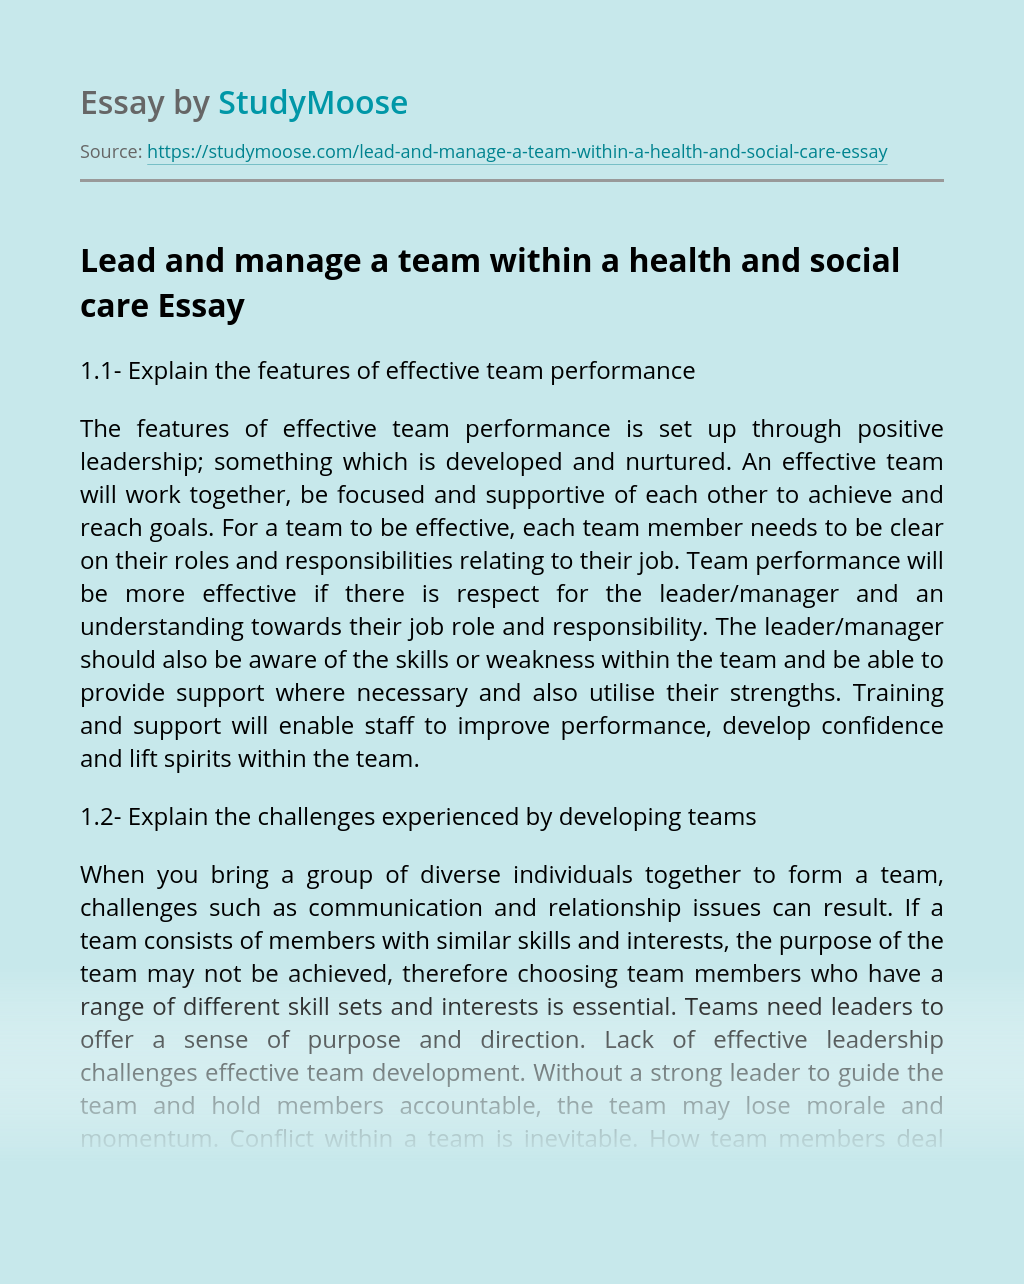 Lead and manage a team within a health and social care